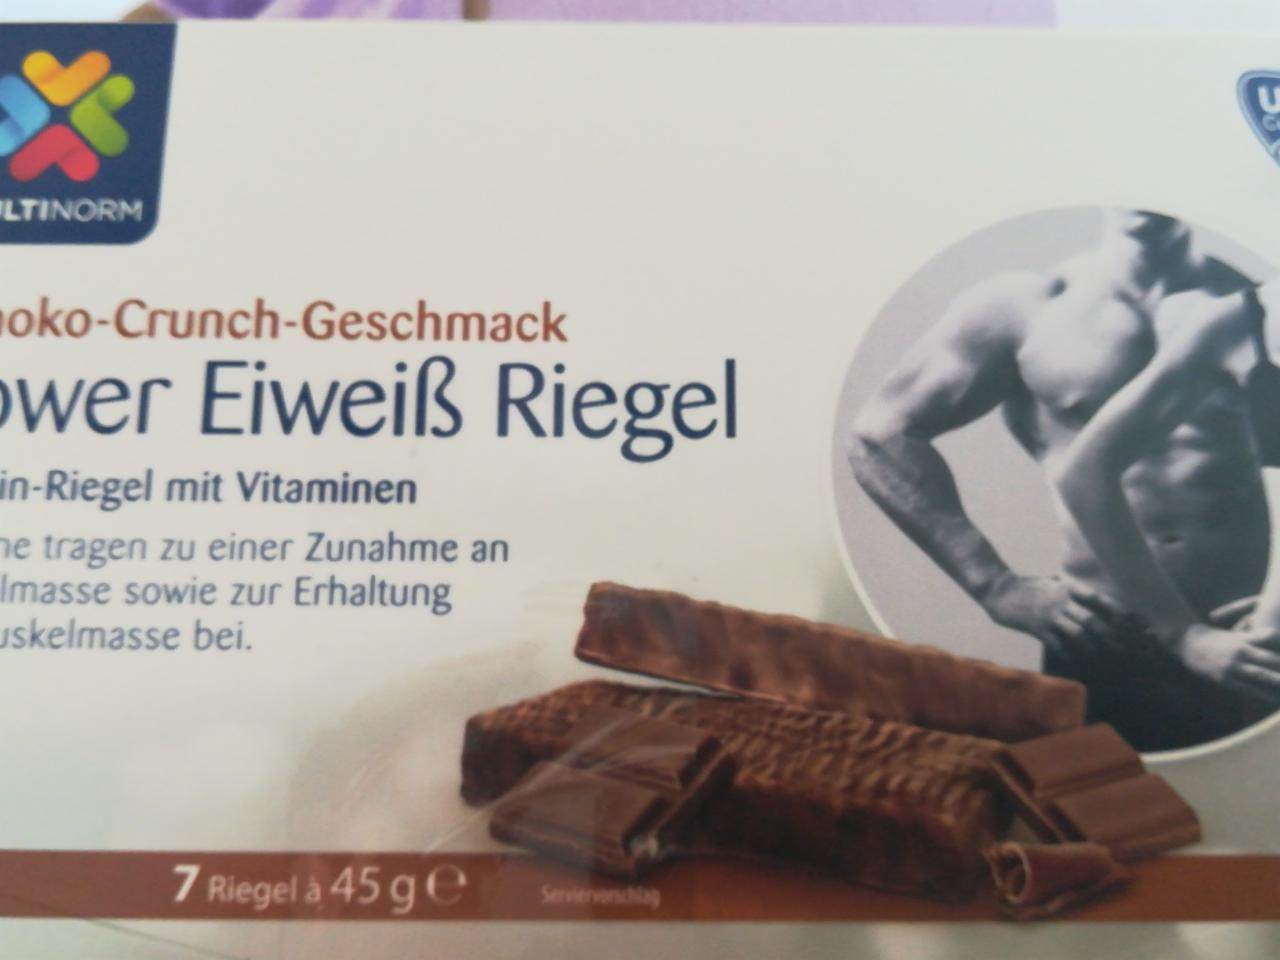 Fotografie - Power eiweiss riegel mit vitaminen Schoko-Crunch